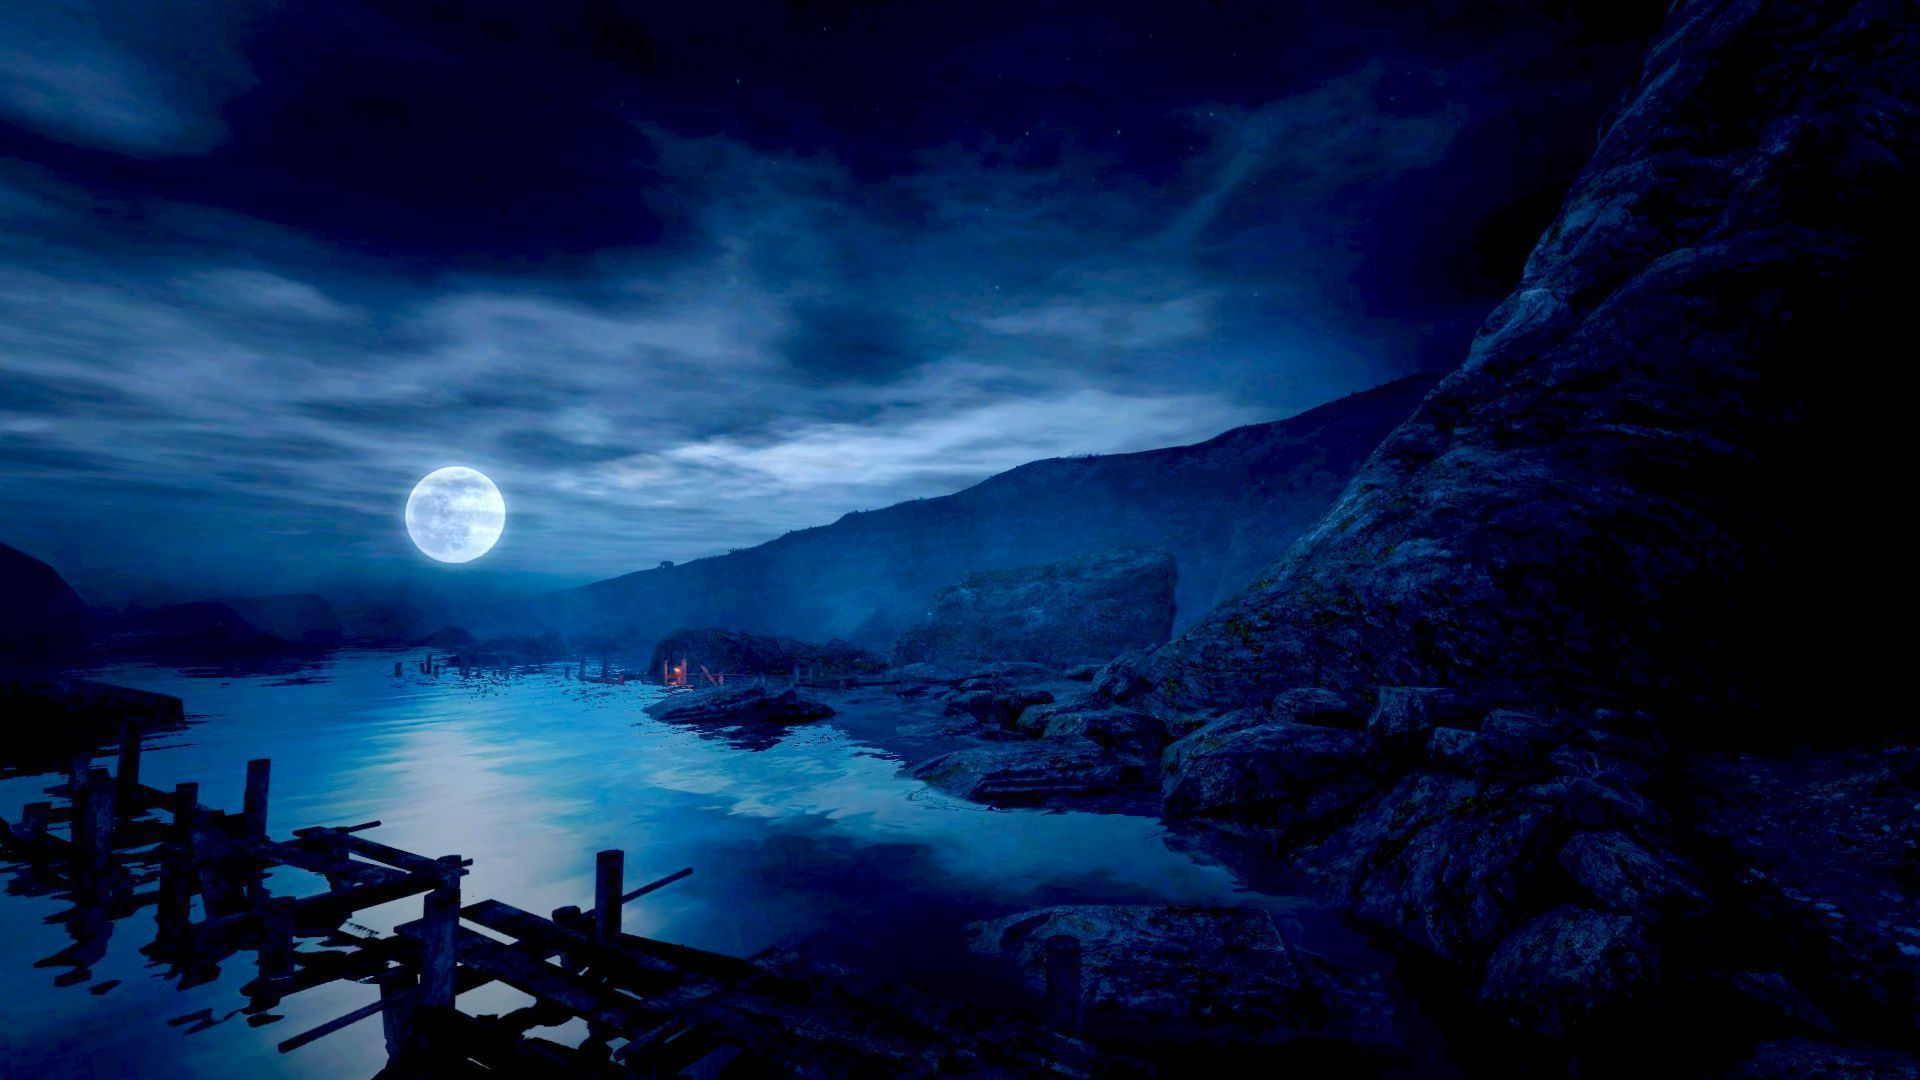 Blue Moon Images